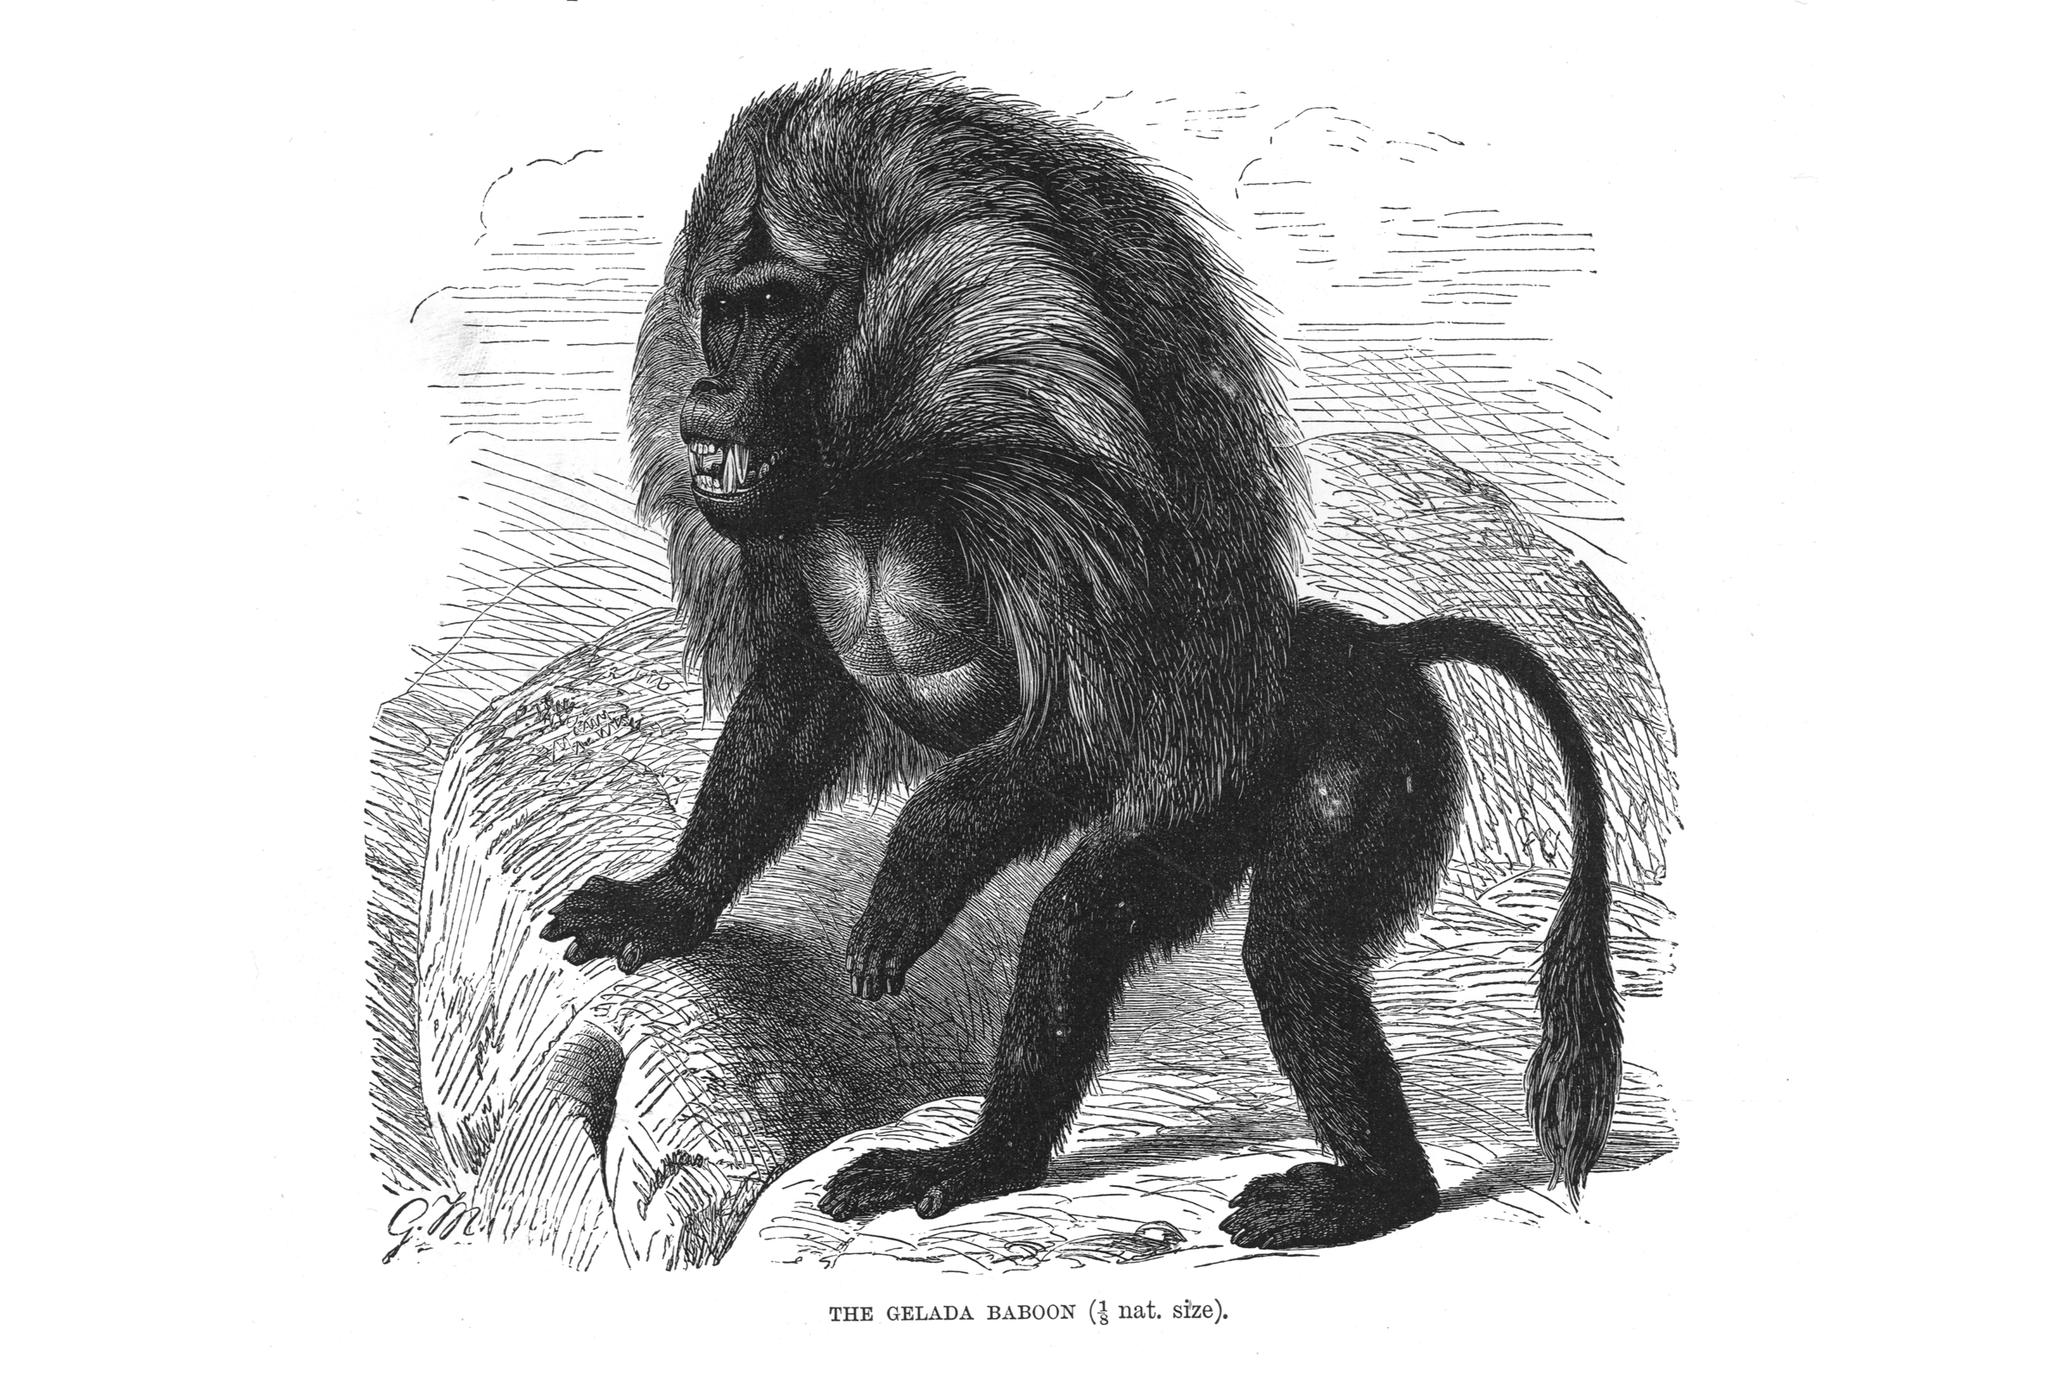 The Gelada Baboon (1/8 nat. size)